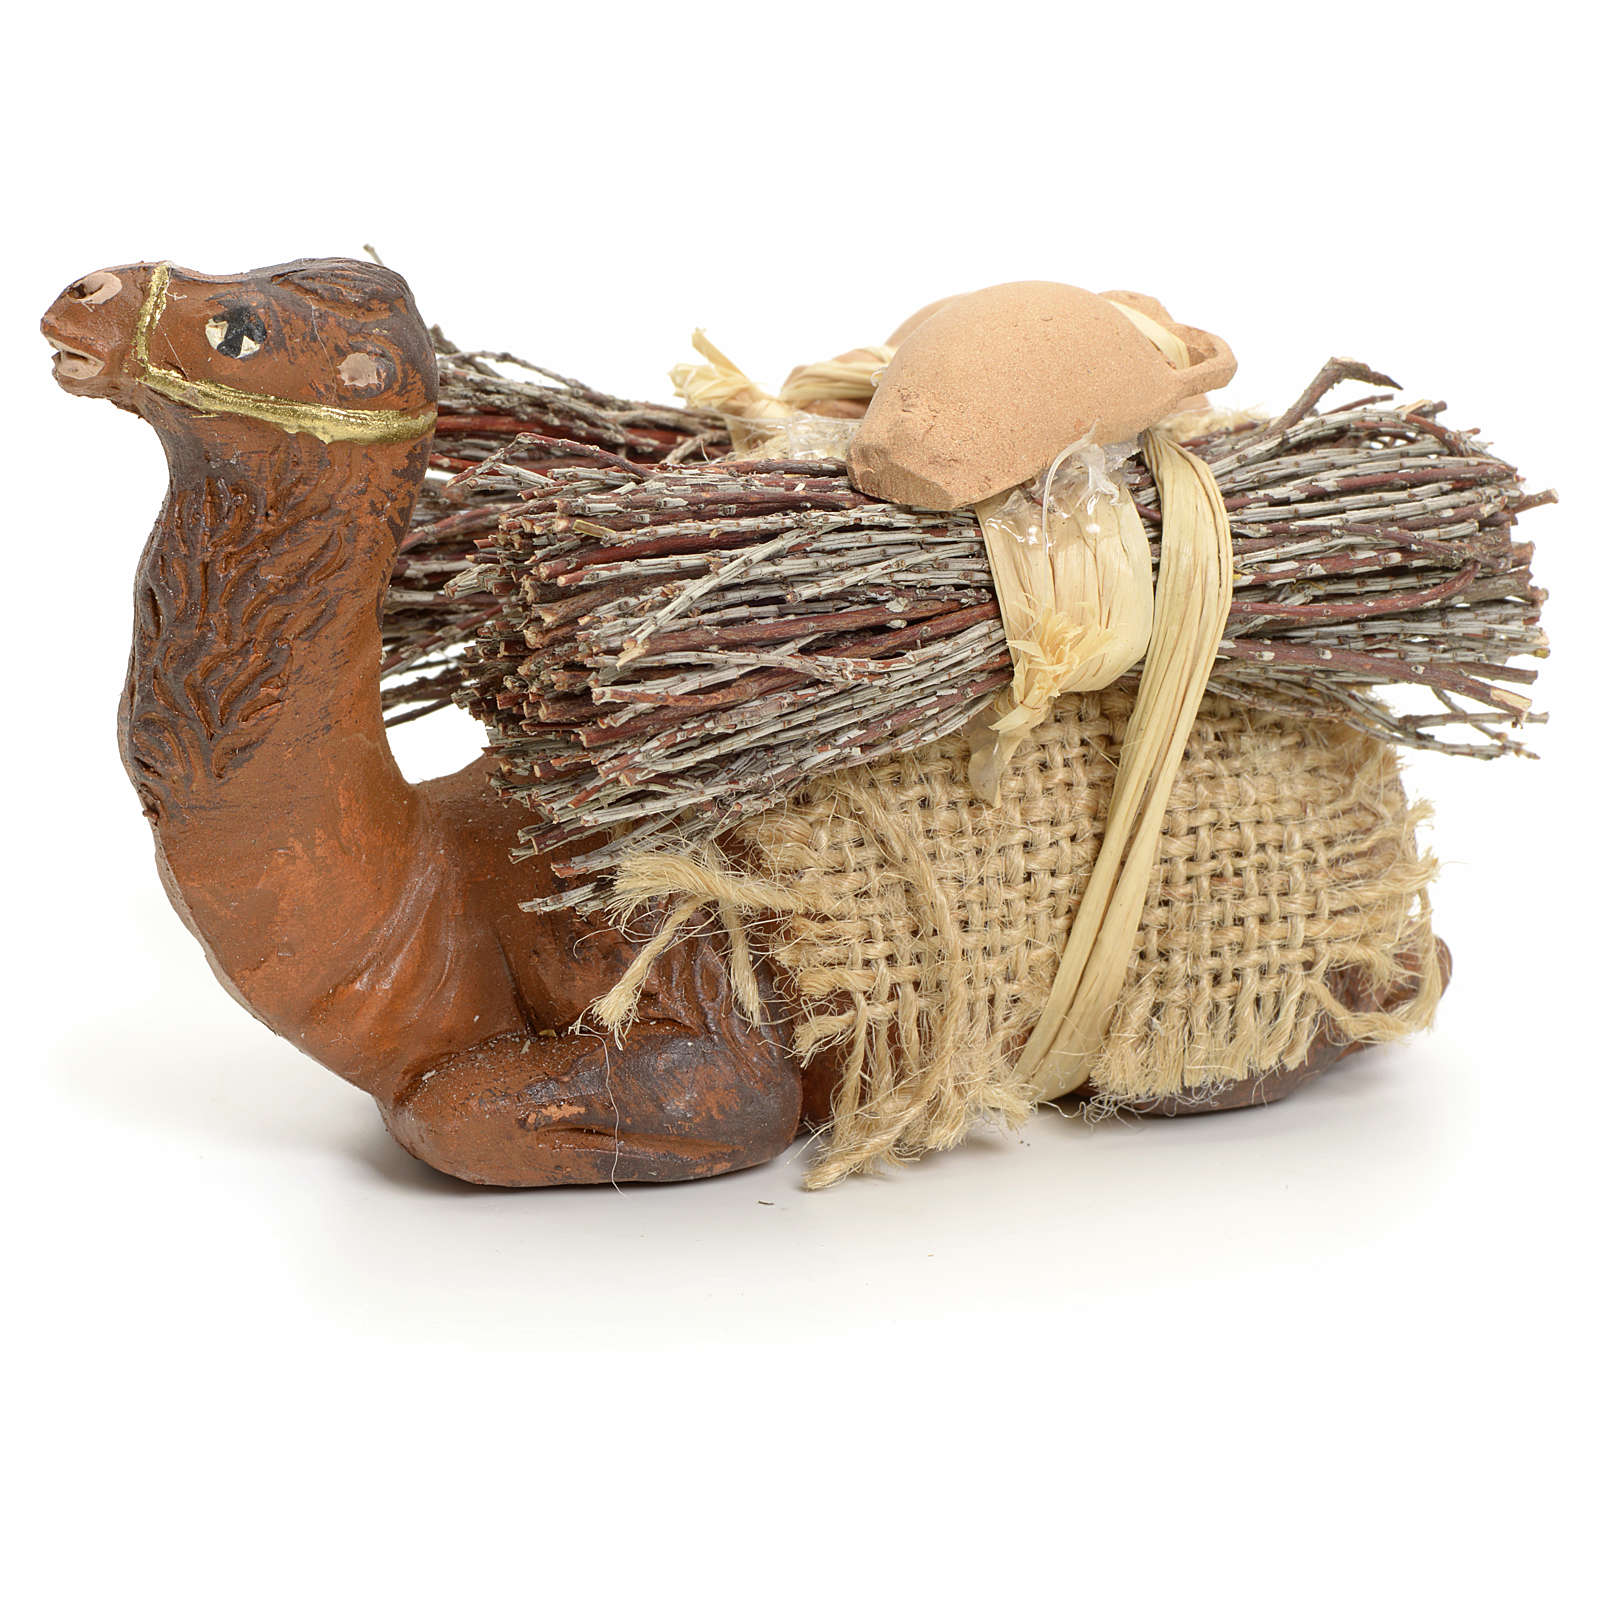 Neapolitan Nativity figurine, kneeling camel with wood bundle, 8 4